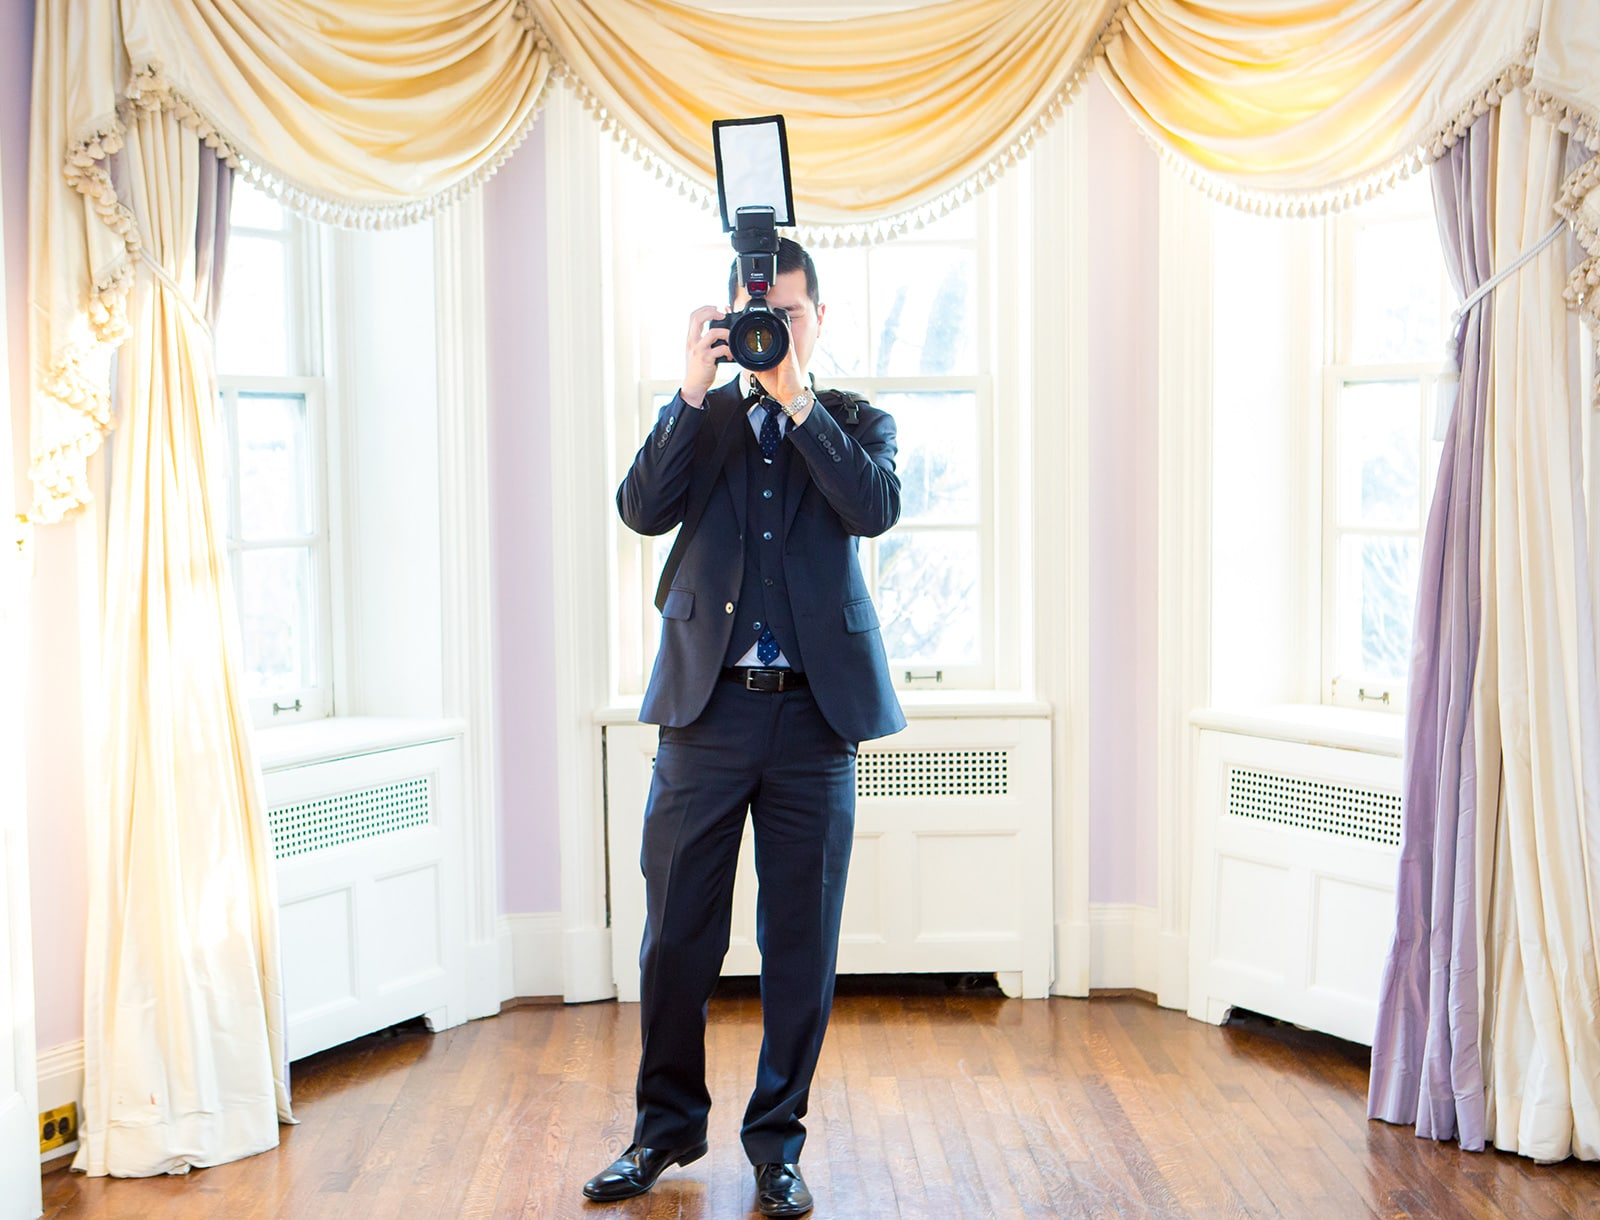 Behind The Scenes of a Wedding Photographer (and why I love my second shooter!)